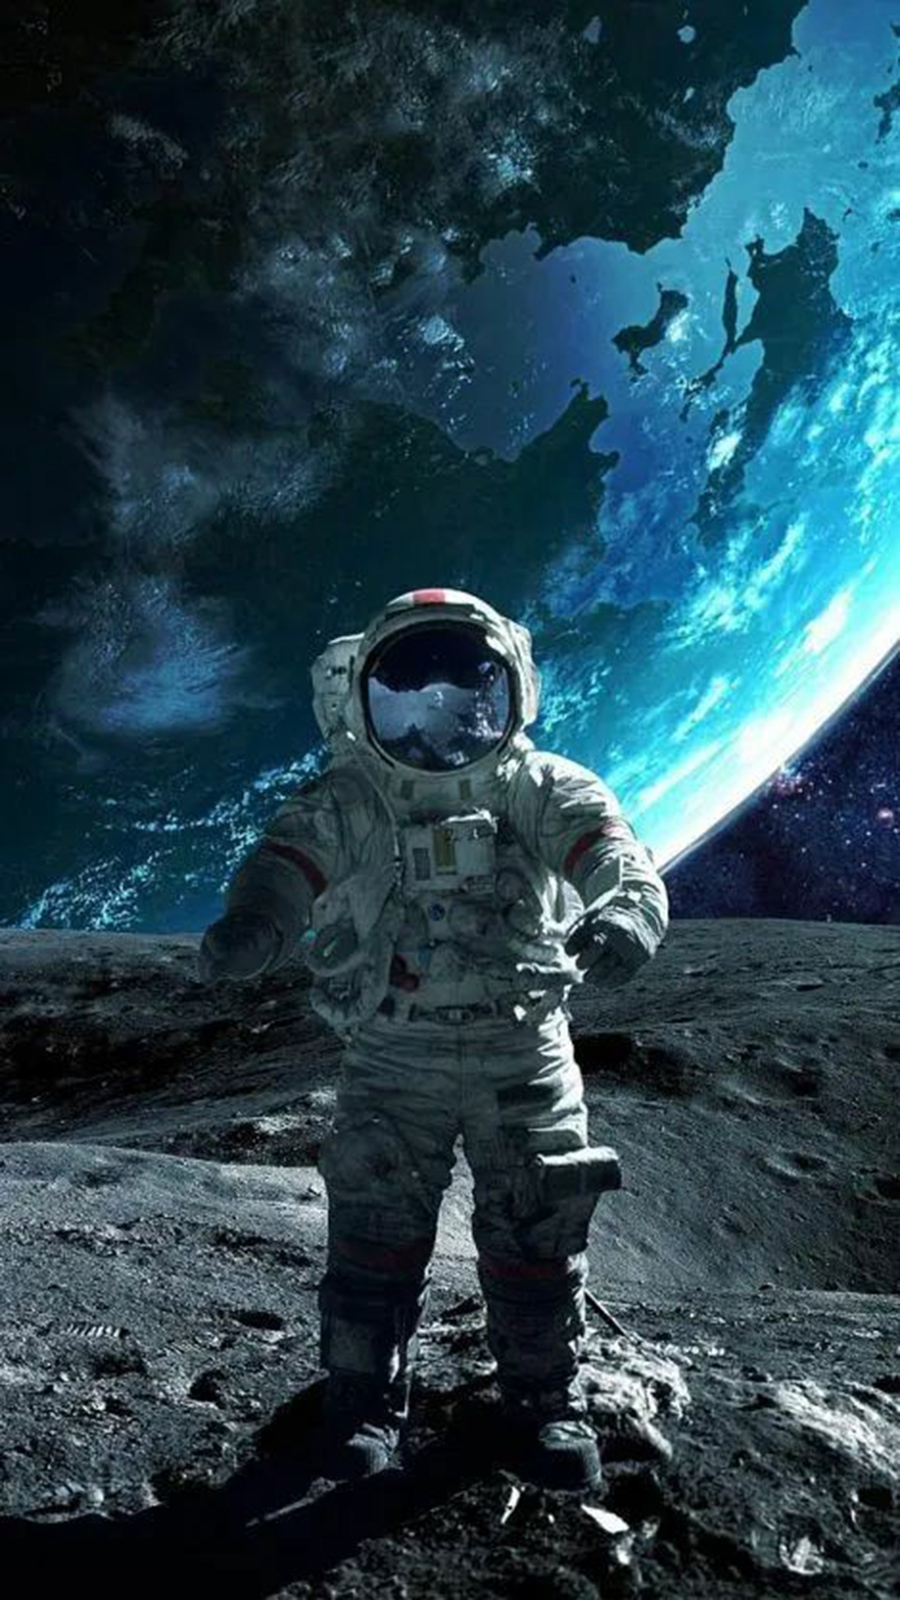 Best Space Wallpapers For Phone – Space Wallpaper